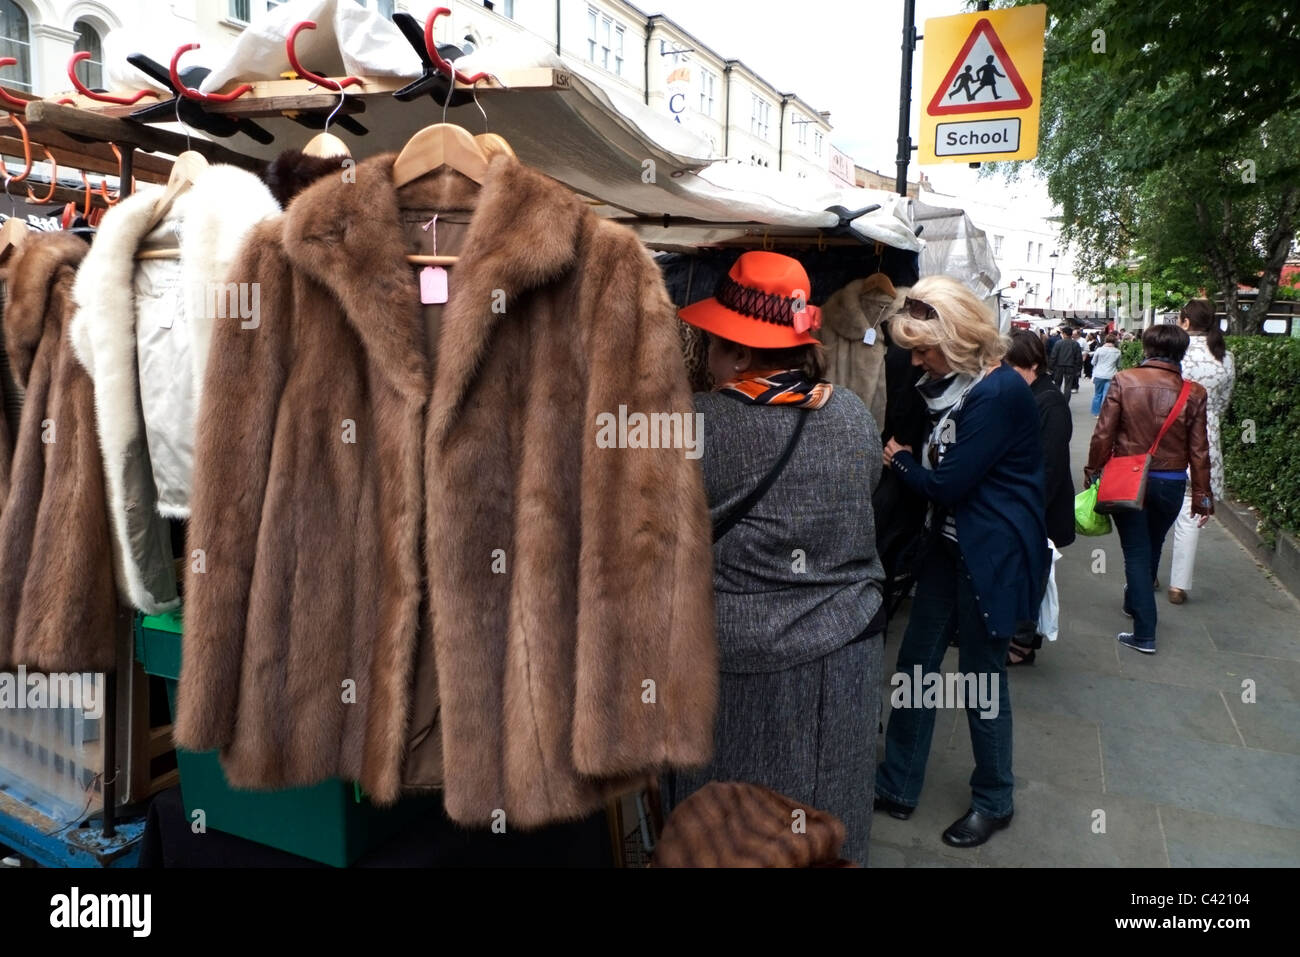 A Woman Shopping And Market Trader On A Vintage Fur Coat Jacket For Sale On A Portobello Road Antique Clothing Market Stall In Notting Hill London England